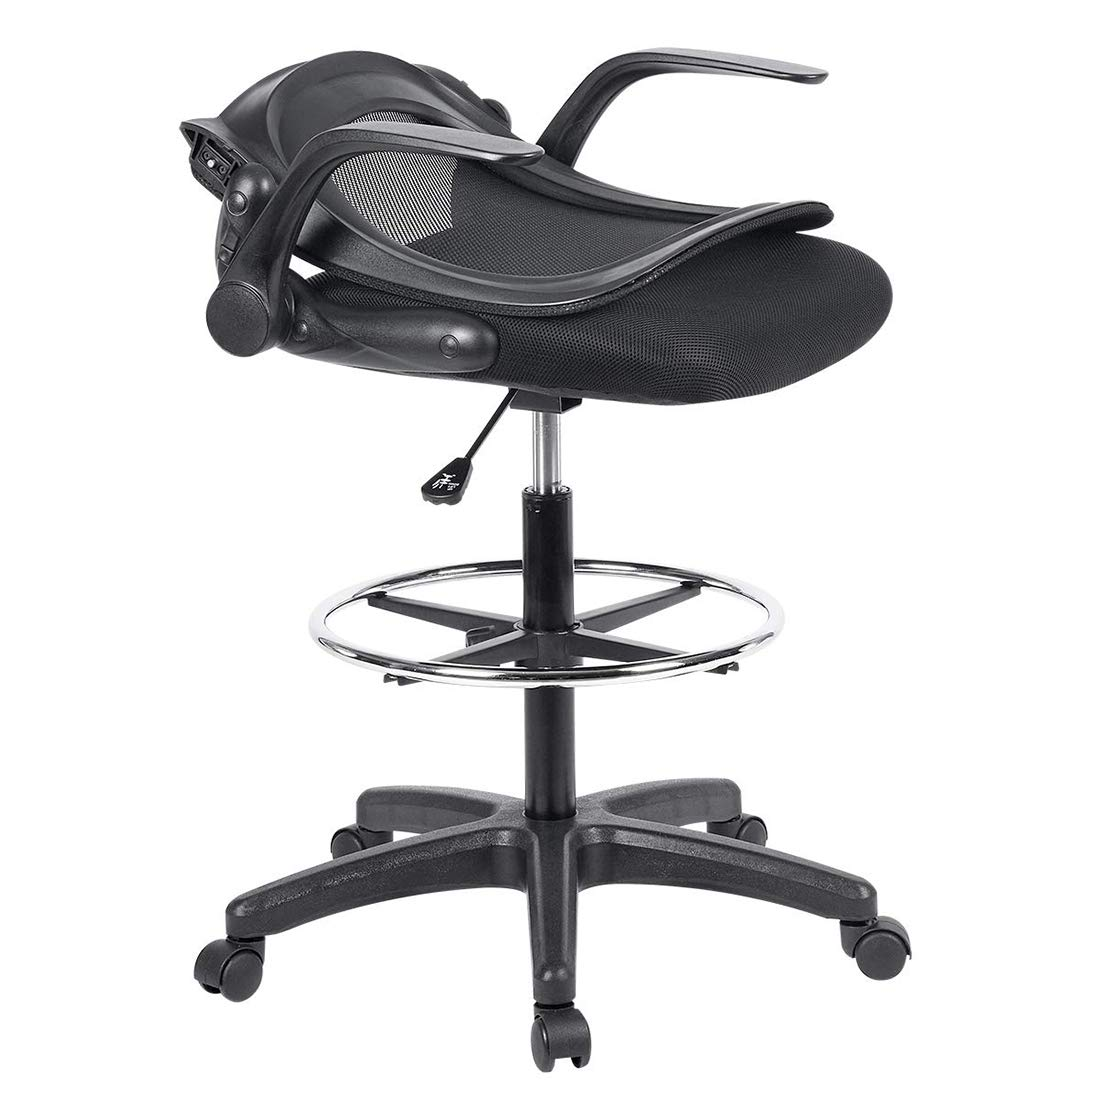 Ulikit Ergonomic Black Mesh Drafting Chair, Office Adjustable Chair Drafting Stool with Adjustable Foot Rest with Arm by Ulikit (Image #4)